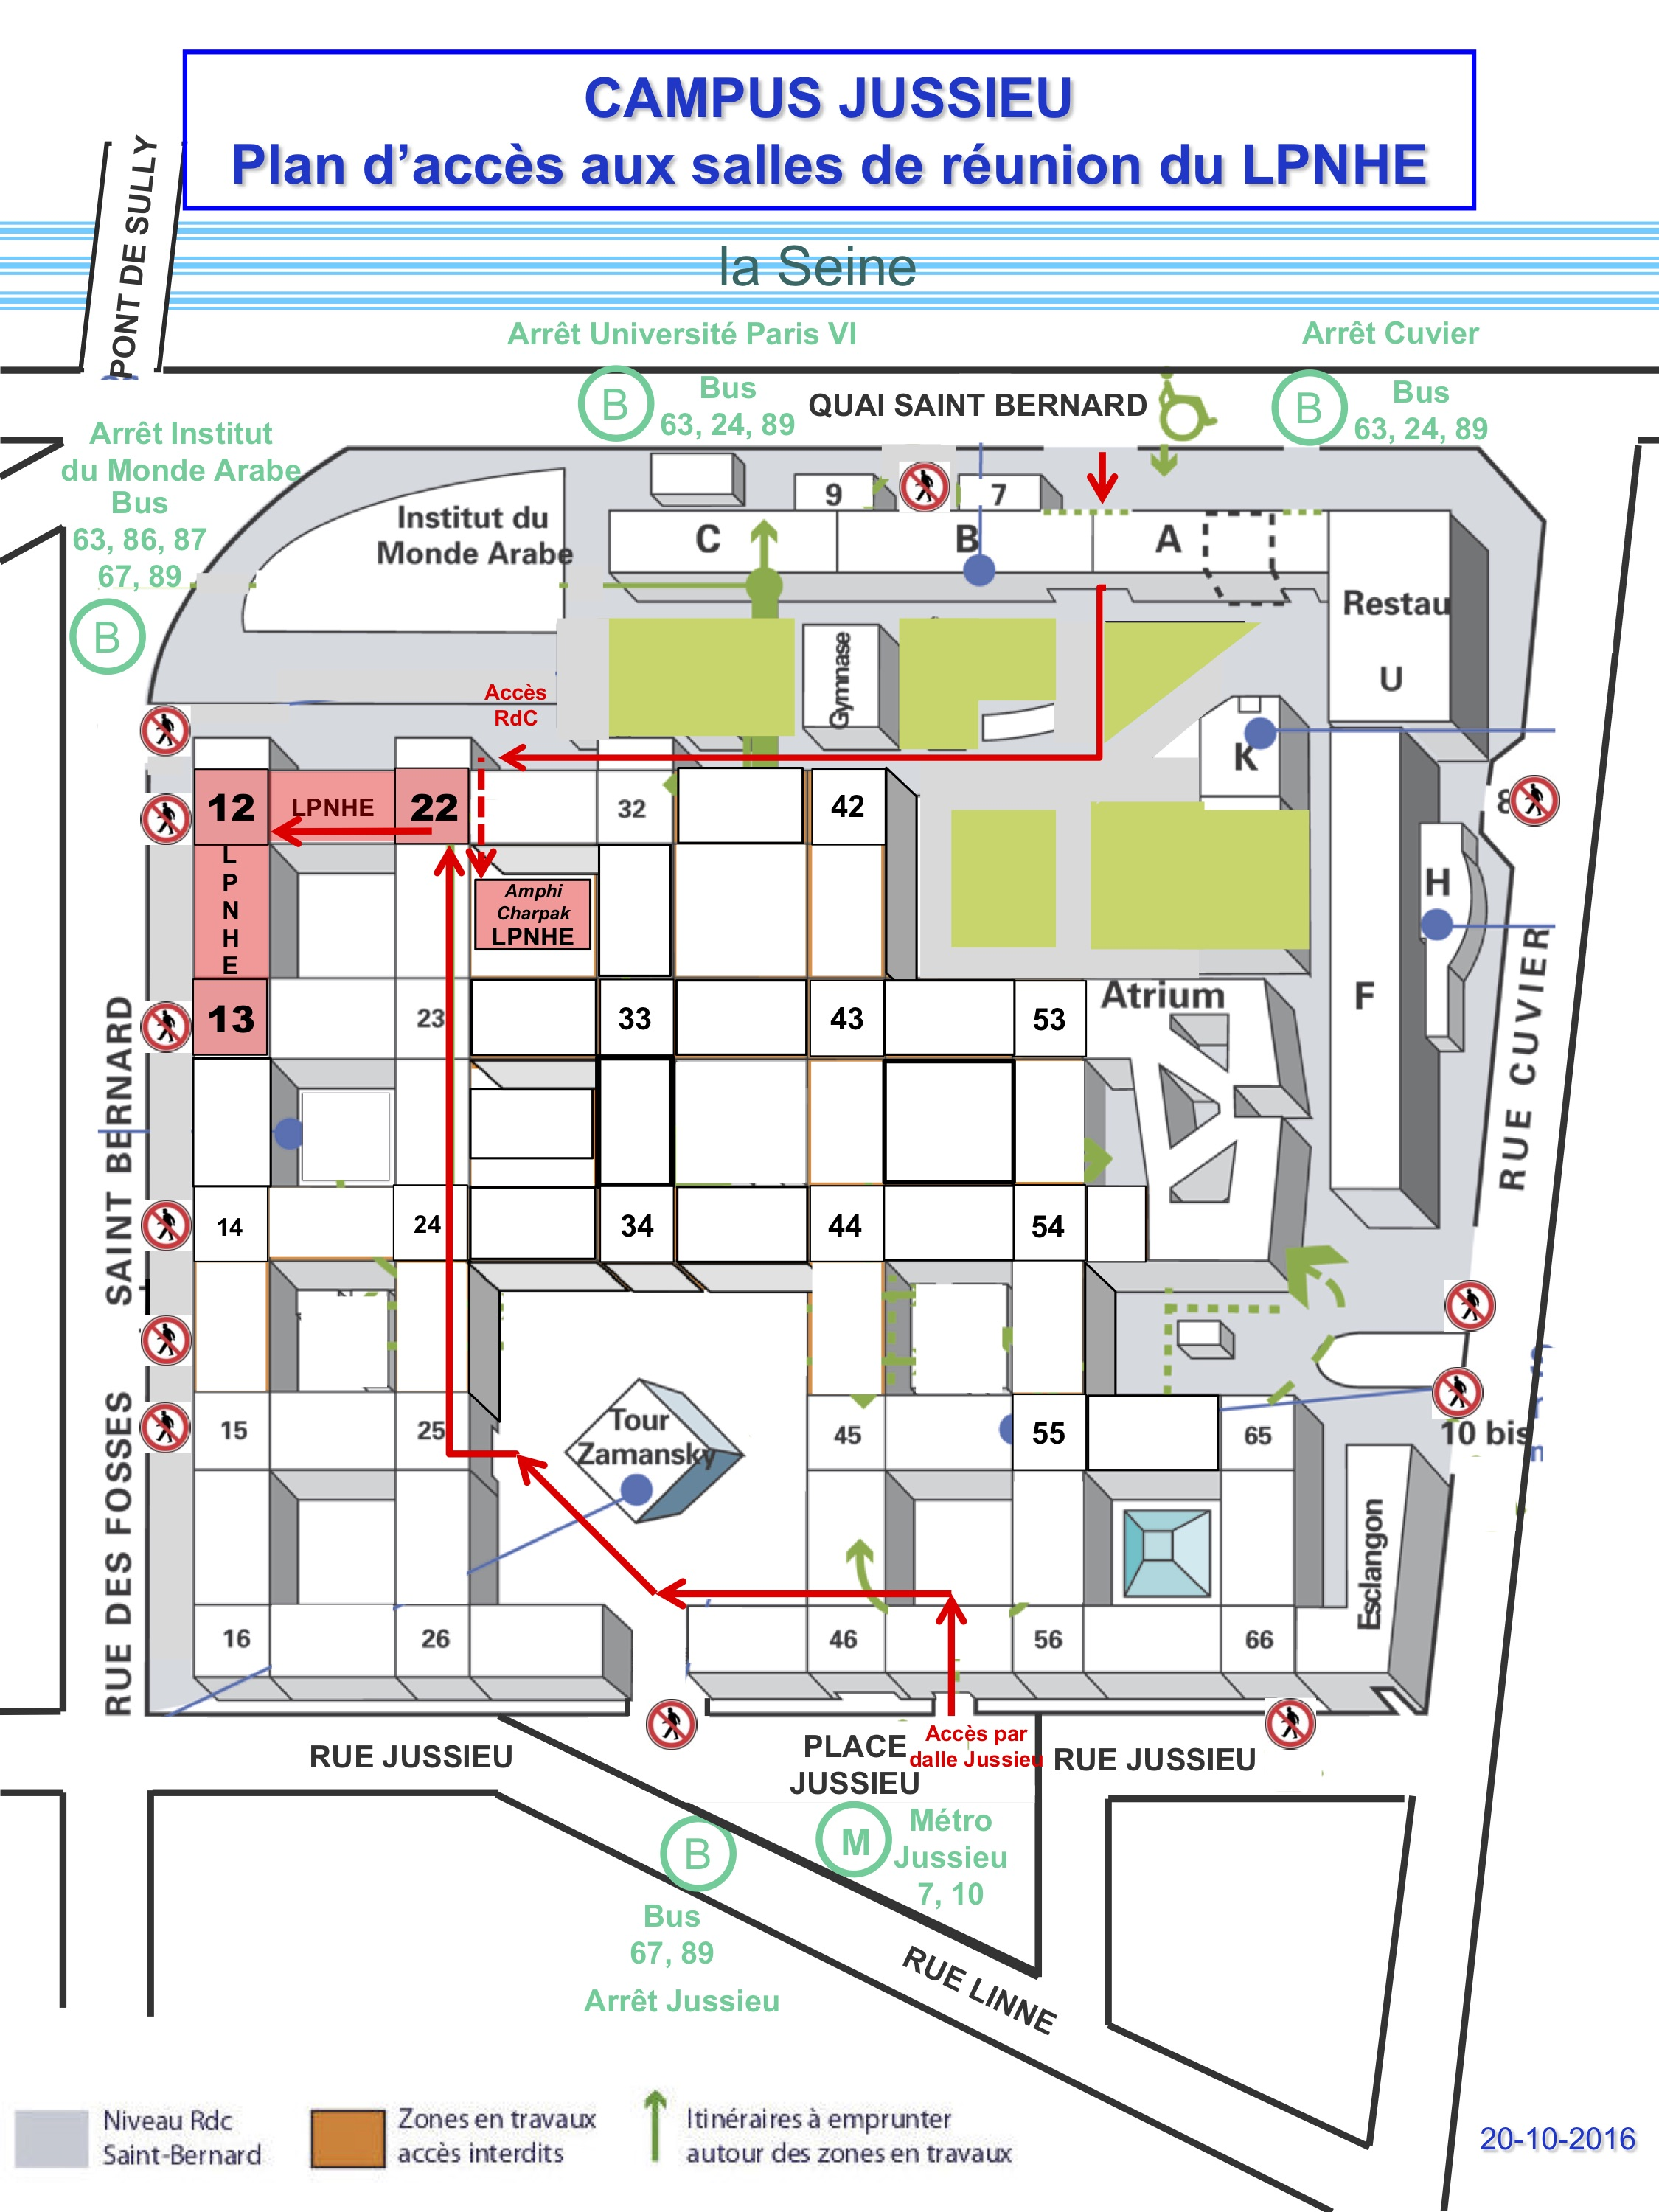 Map showing how to get to the workshop on the Jussieu campus